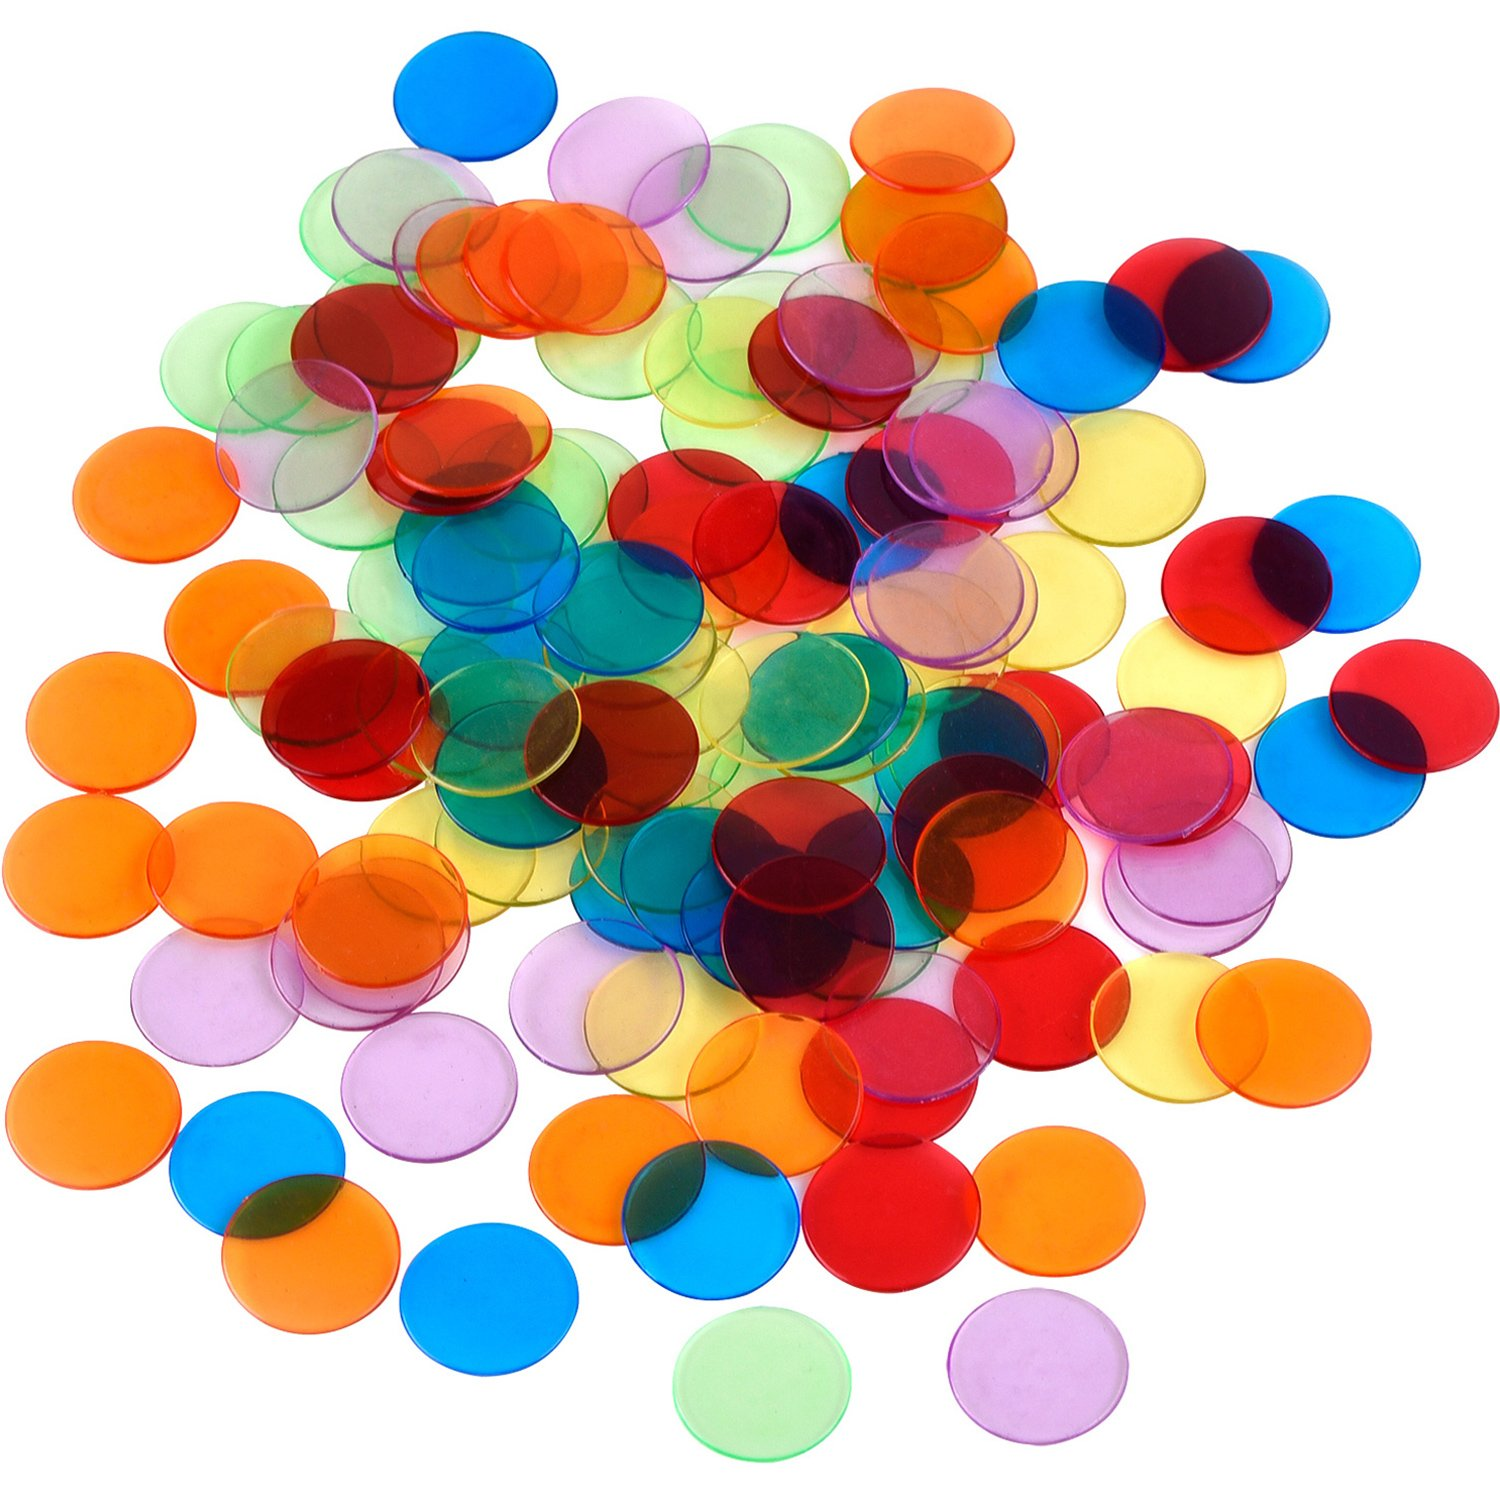 Shappy 120 Pieces Transparent Color Counters Counting Bingo Chips Plastic Markers with Storage Bag (Multicolored)